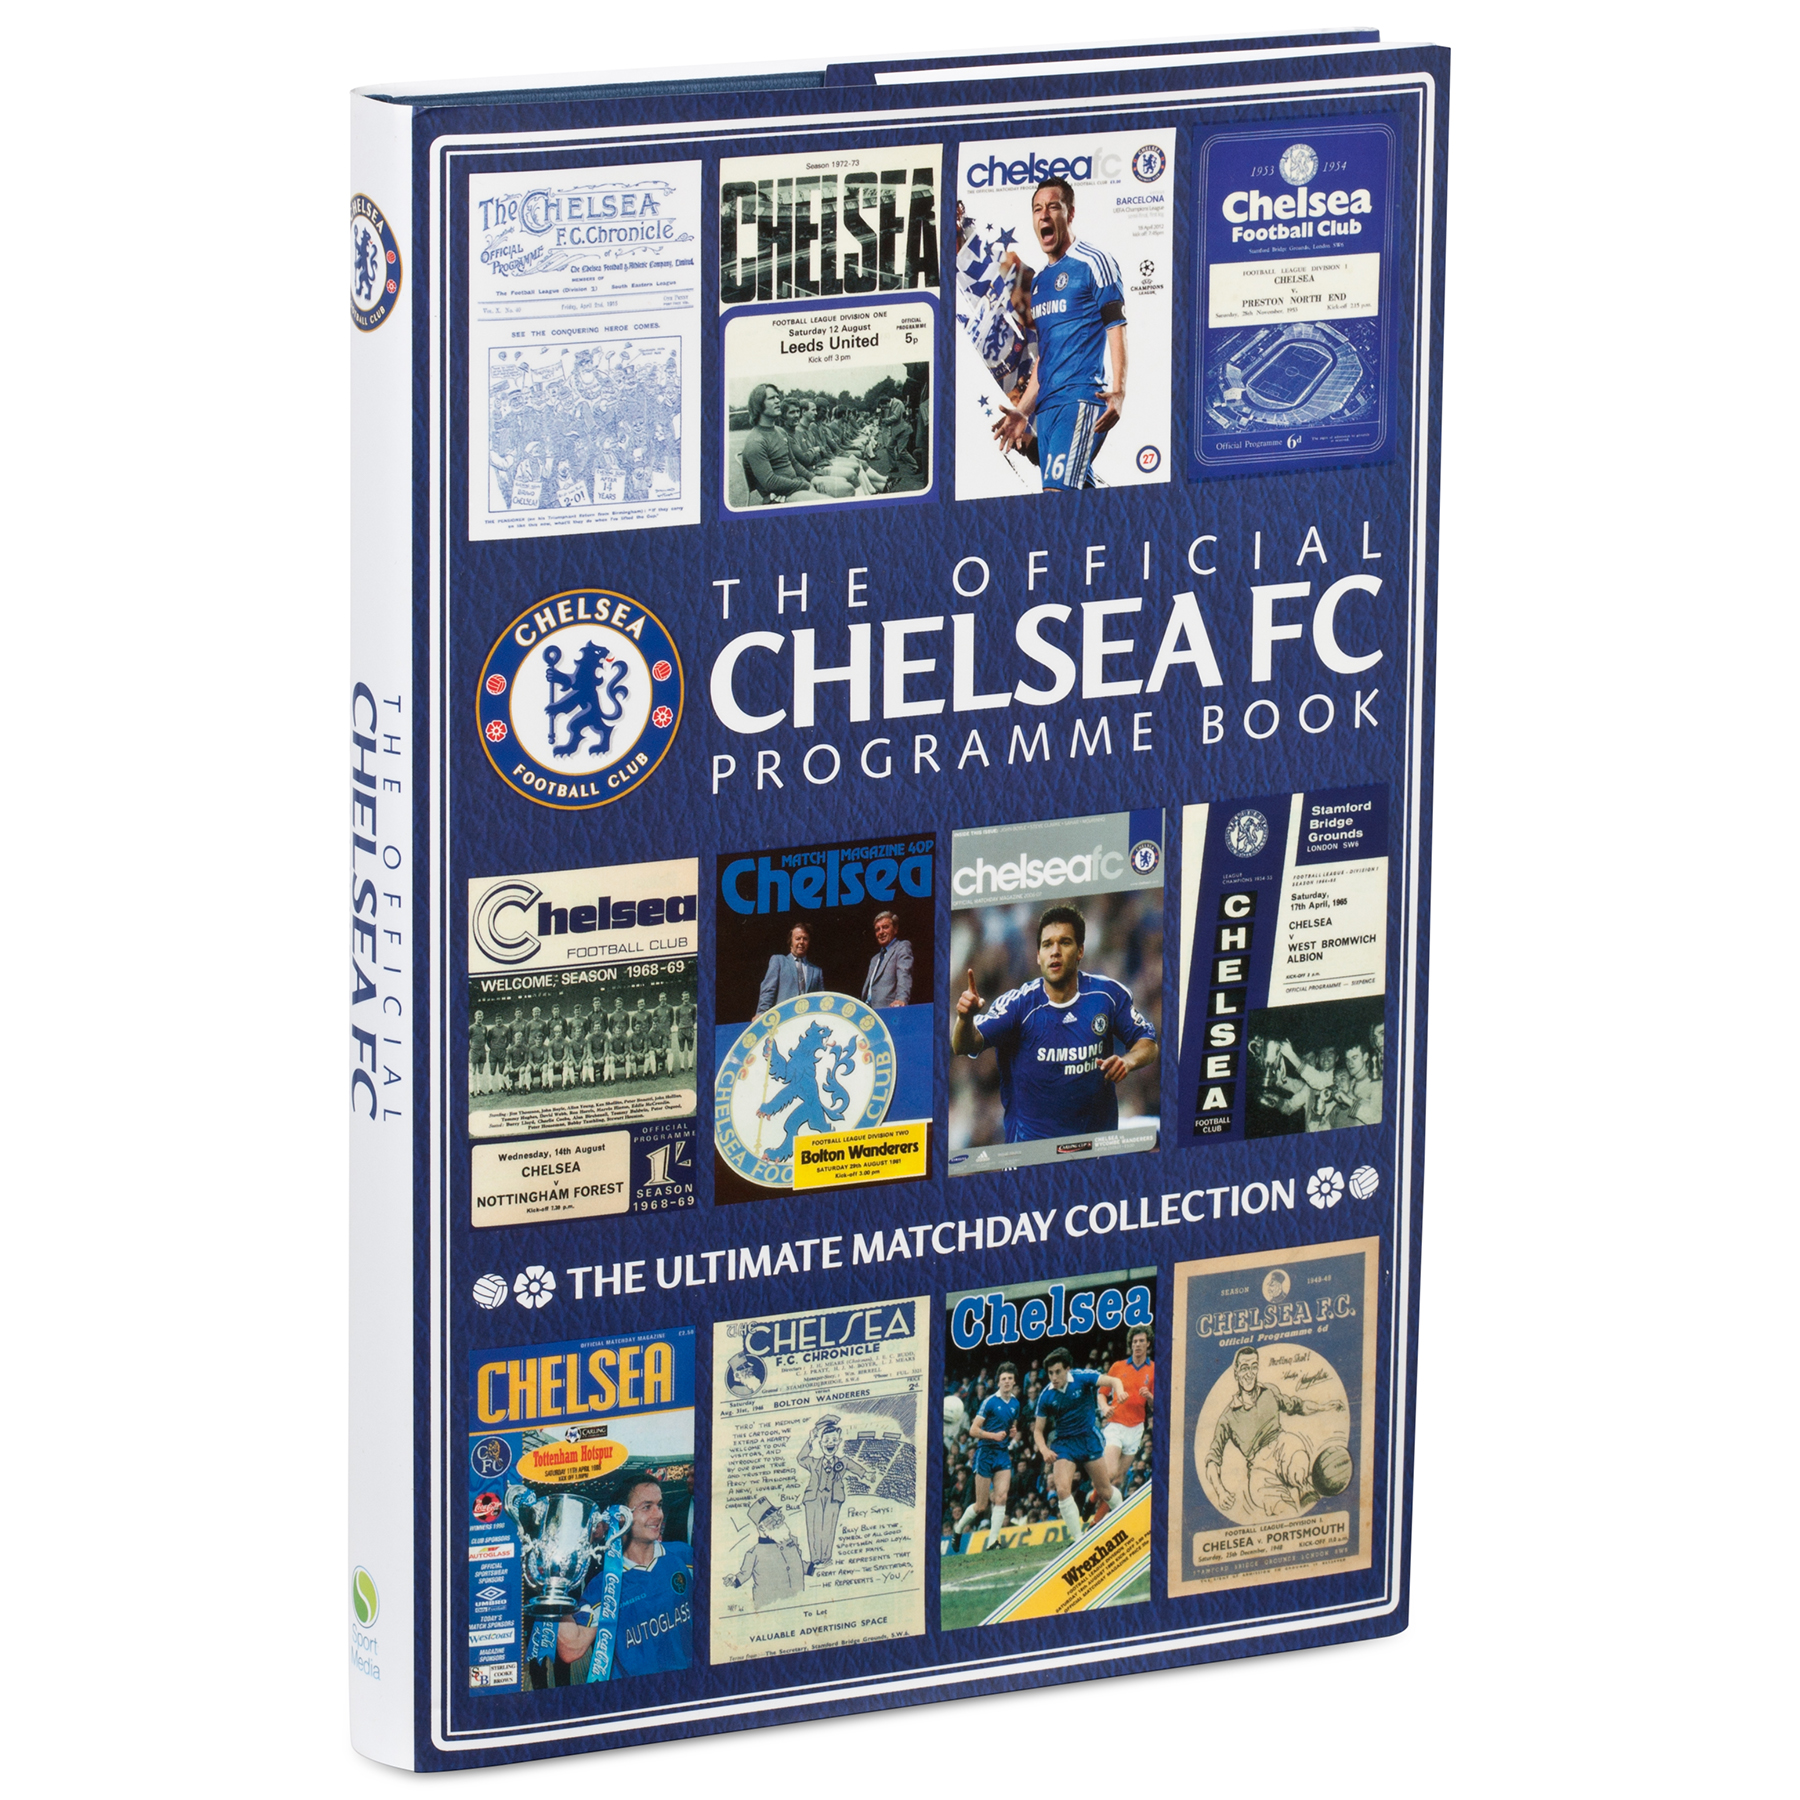 Ever walked through the turnstiles and bought a programme? Flicked through the pages as you've waited for the action to begin? Ticked off the names on the team sheet, felt inspired by the captain's notes, then kept it safe as a treasured memento of a special occasion? Well, then the Official Chelsea FC Programme Book is the ultimate souvenir for every fan who has ever loved going to Stamford Bridge. Chelsea have a proud tradition and ever since the early days the programme has been an essential part of the match day experience. It's the perfect reminder of those unforgettable afternoons and nights when Blues heroes from Jimmy Greaves to Gianfranco Zola, Terry Venables to Peter Osgood, Didier Drogba and beyond turned on the style. Now, for the first time, this attractive and comprehensive official club book dusts down the famous programmes and revisits the pages that made history, including publications from the 1954/55 title-winning season and the triumphant 2011/12 Champions League campaign, not to mention the team's recent Premier League successes. Featuring everything from manager's notes and captain's columns to team sheets, funny and revealing pictures, exclusive interviews and special editions, this book is a journey through the years as the fan on the terrace will have watched it unfold. Thanks to the unrivalled Chelsea Collection, many rare pages from historic programmes are reproduced, with the story brought right up to date. The Official Chelsea Programme Book will enthral Blues fans everywhere and provides a wonderful insight into the club down the years since it was founded in 1905.